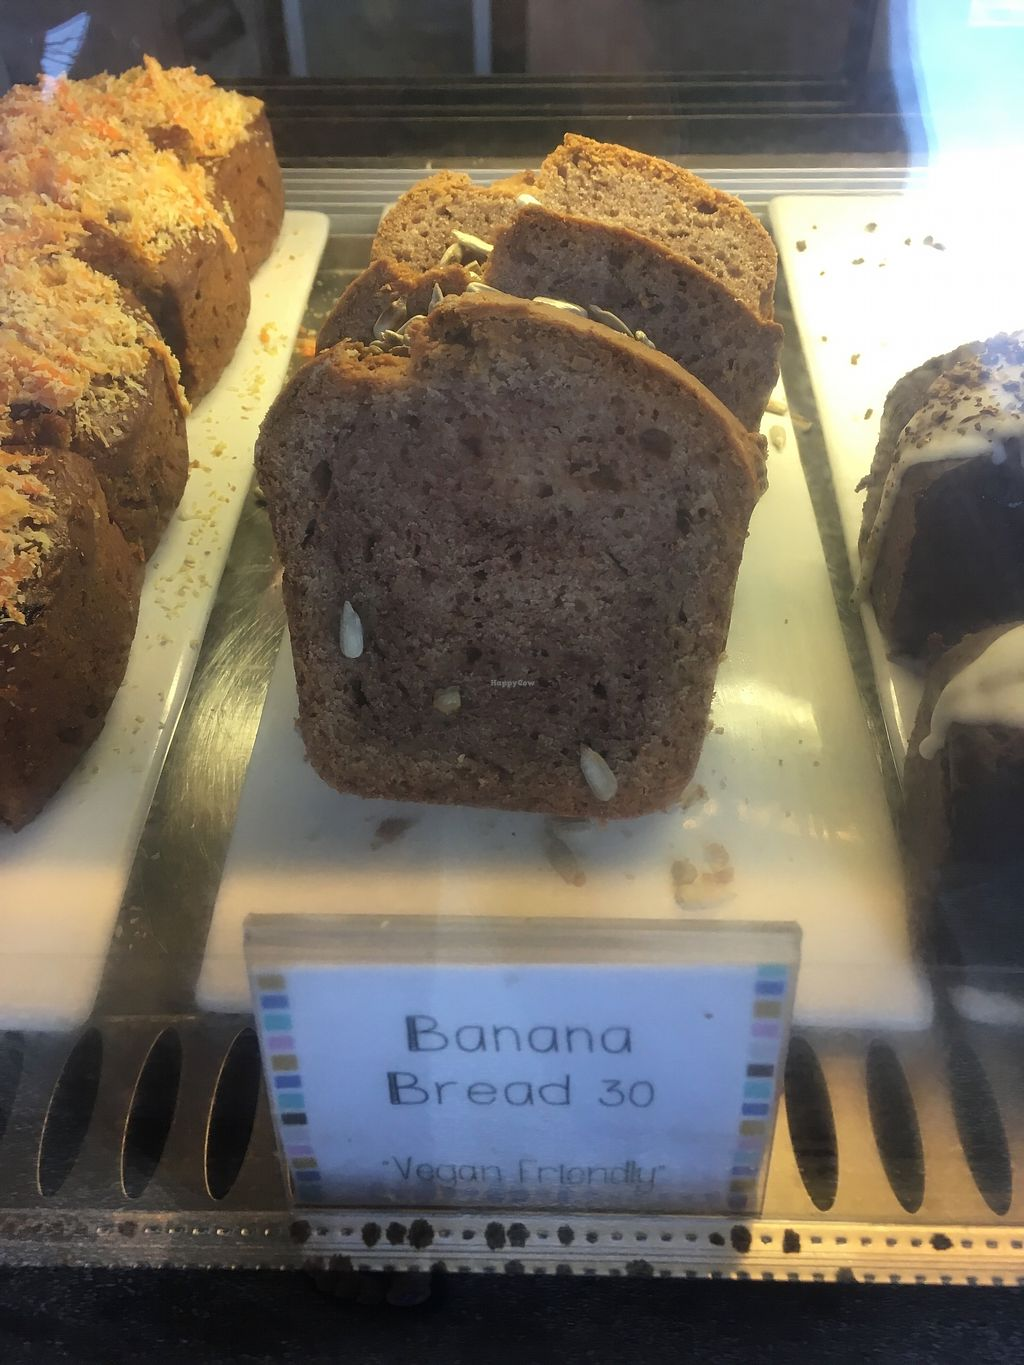 """Photo of Coffee & Thyme  by <a href=""""/members/profile/jojoinbrighton"""">jojoinbrighton</a> <br/>Banana bread <br/> August 9, 2017  - <a href='/contact/abuse/image/97981/290744'>Report</a>"""